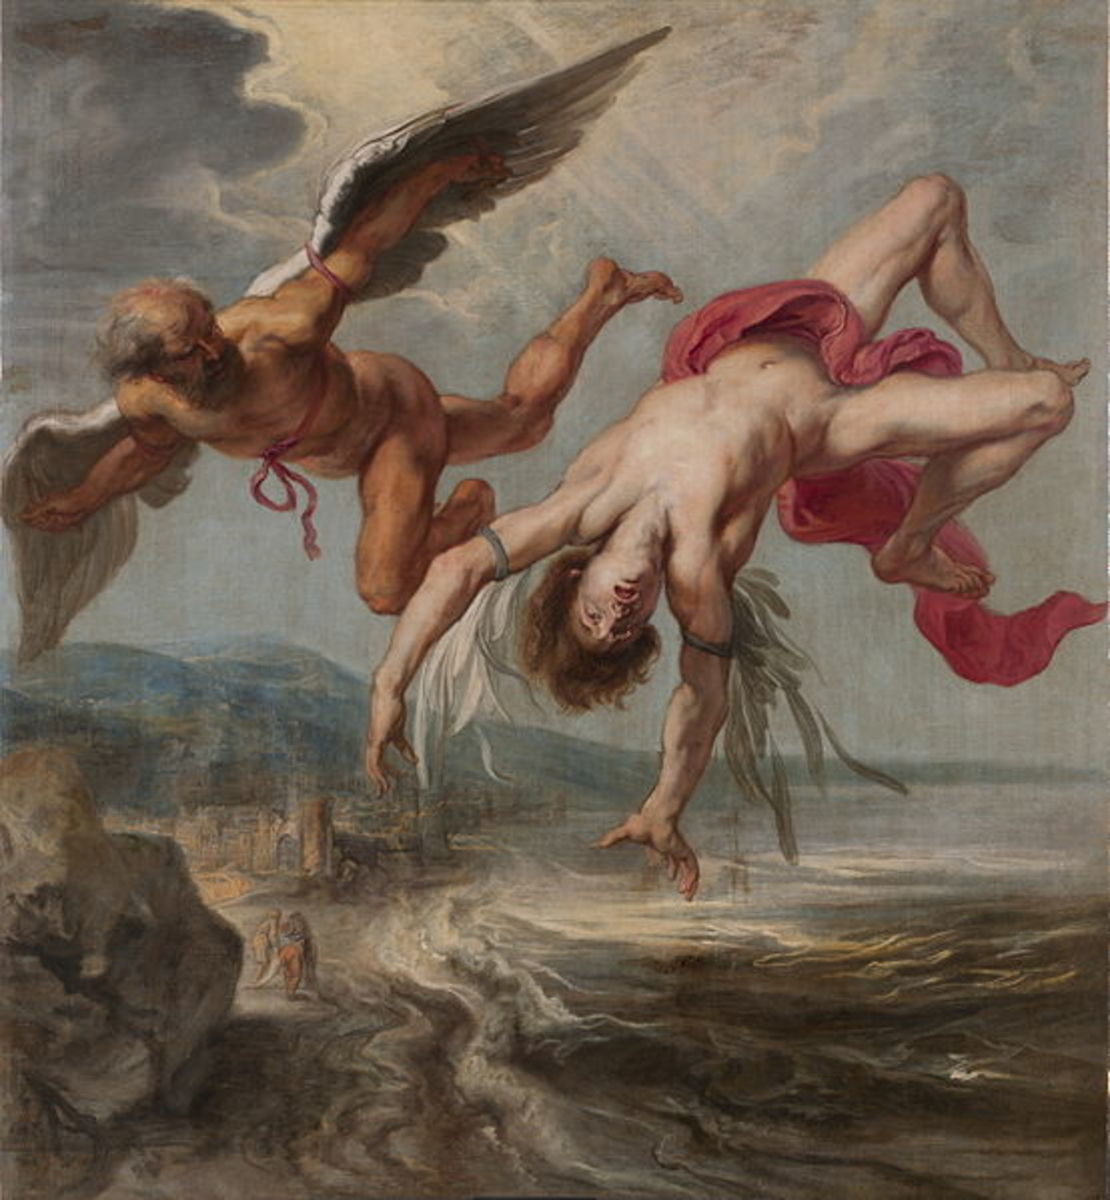 Icarus Falls - Jacob Peter Gowy - PD-art-100